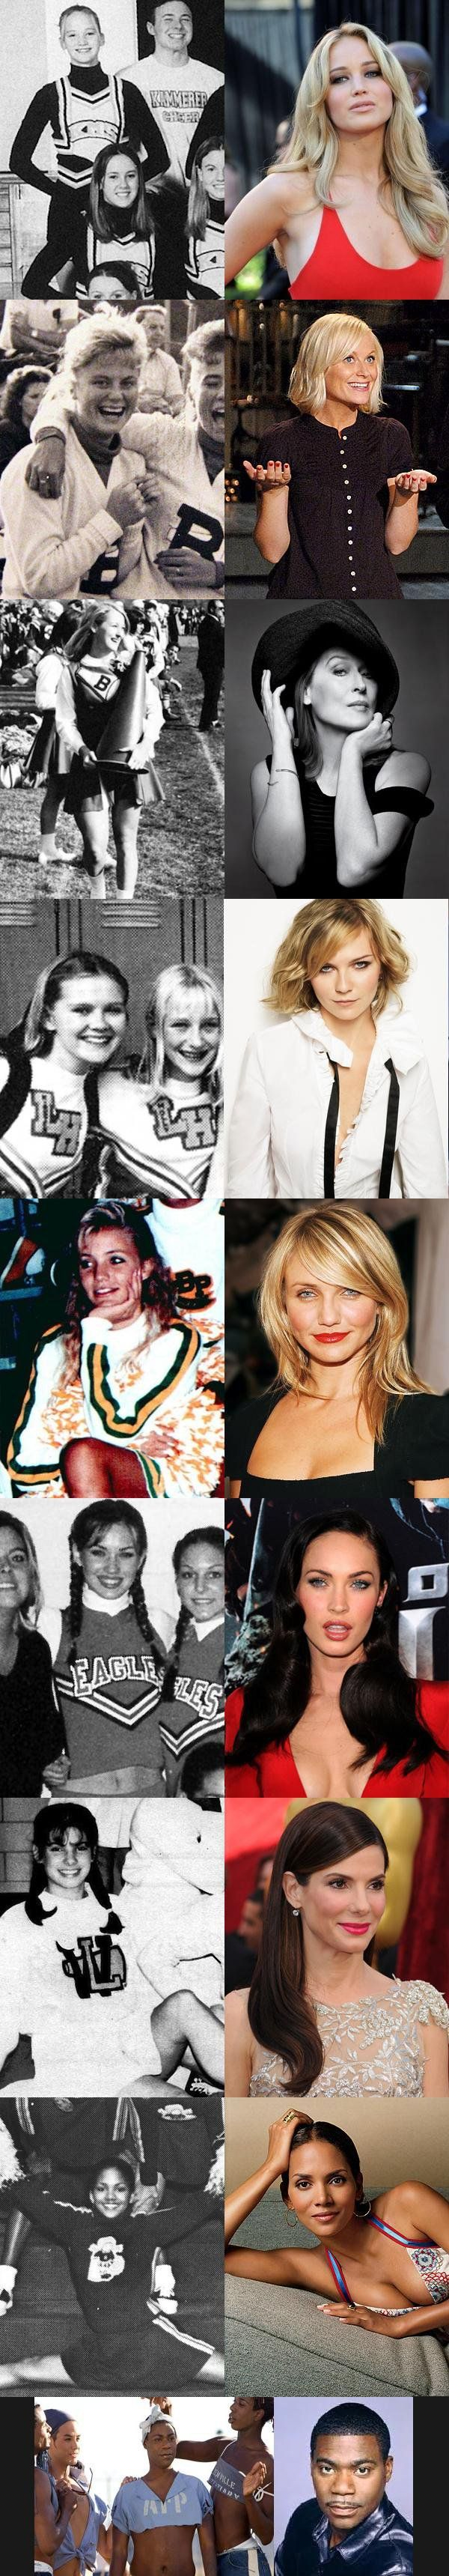 Famous people with origins in cheerleading